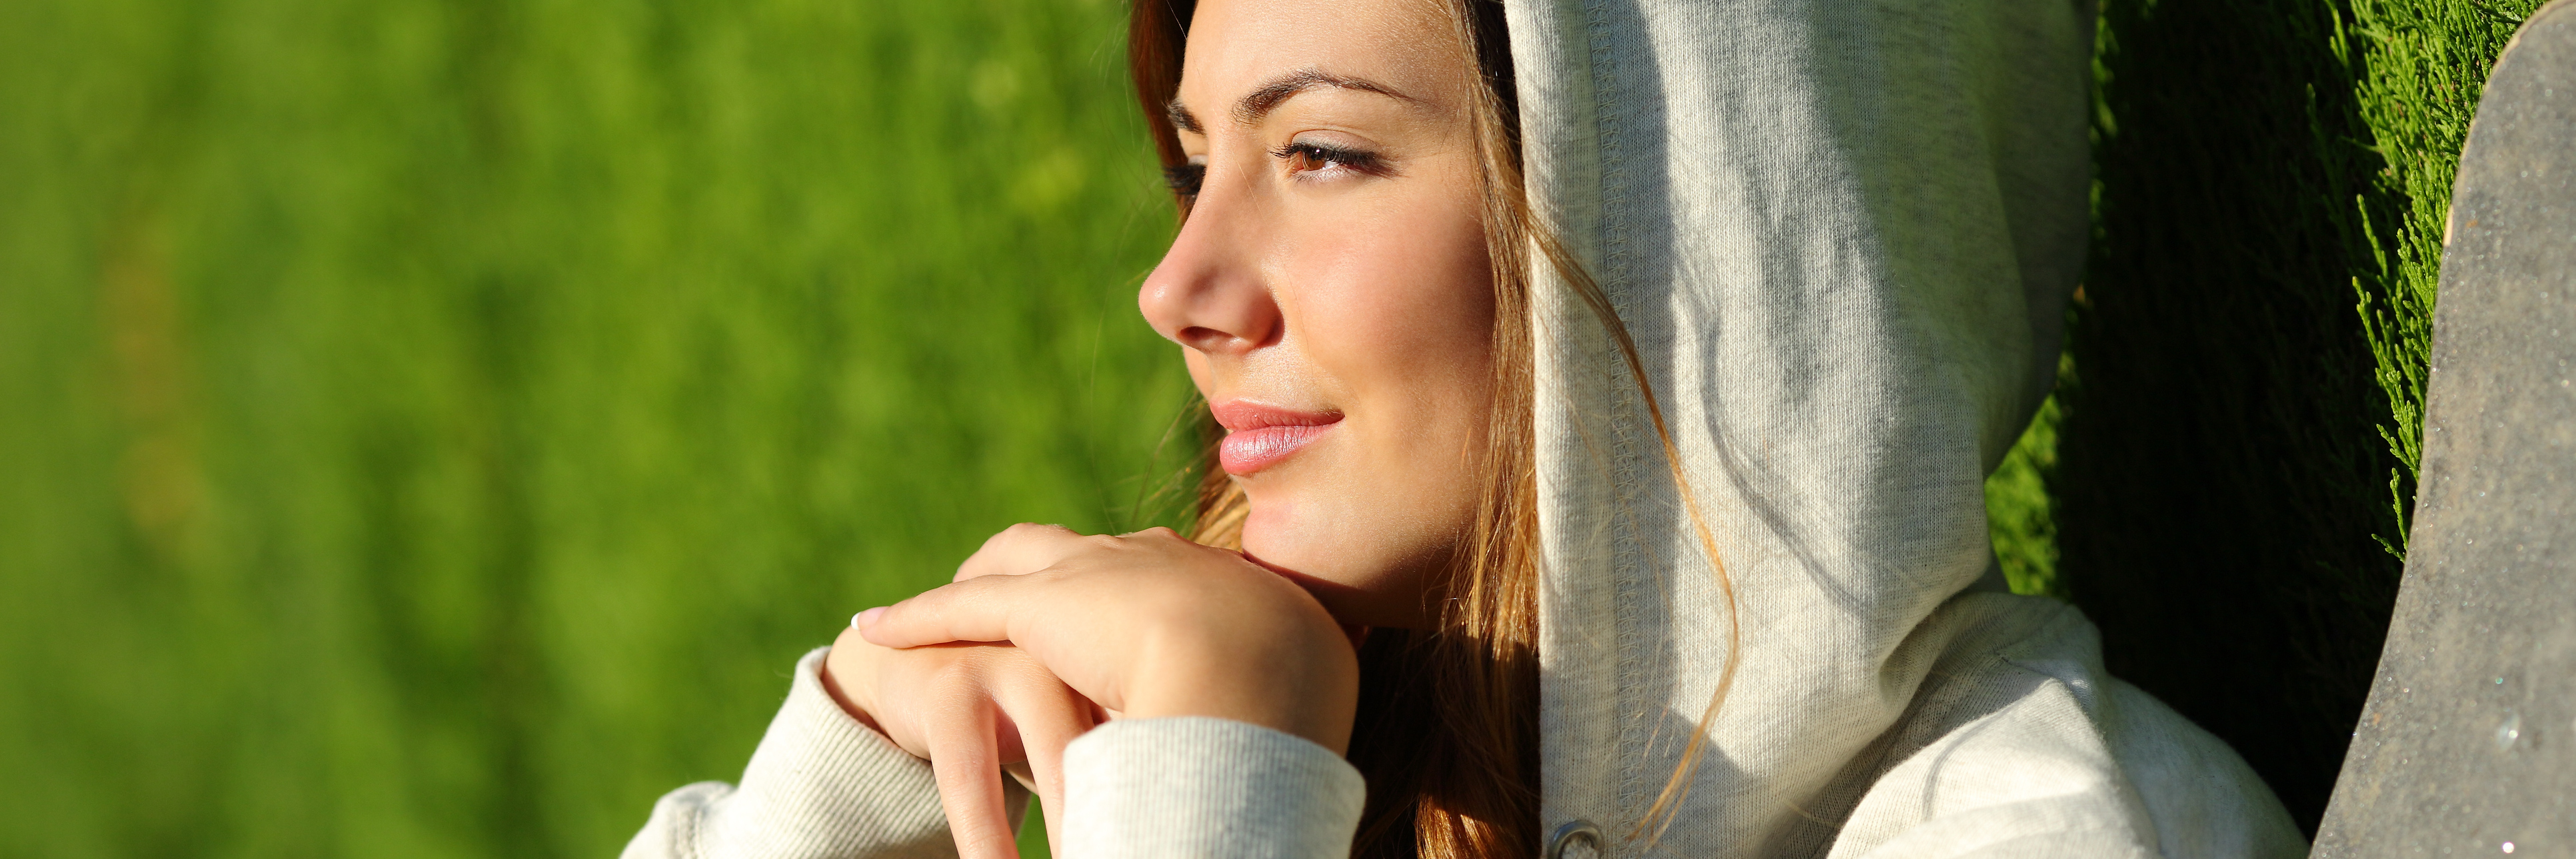 young woman staring out over sunset looking pensive